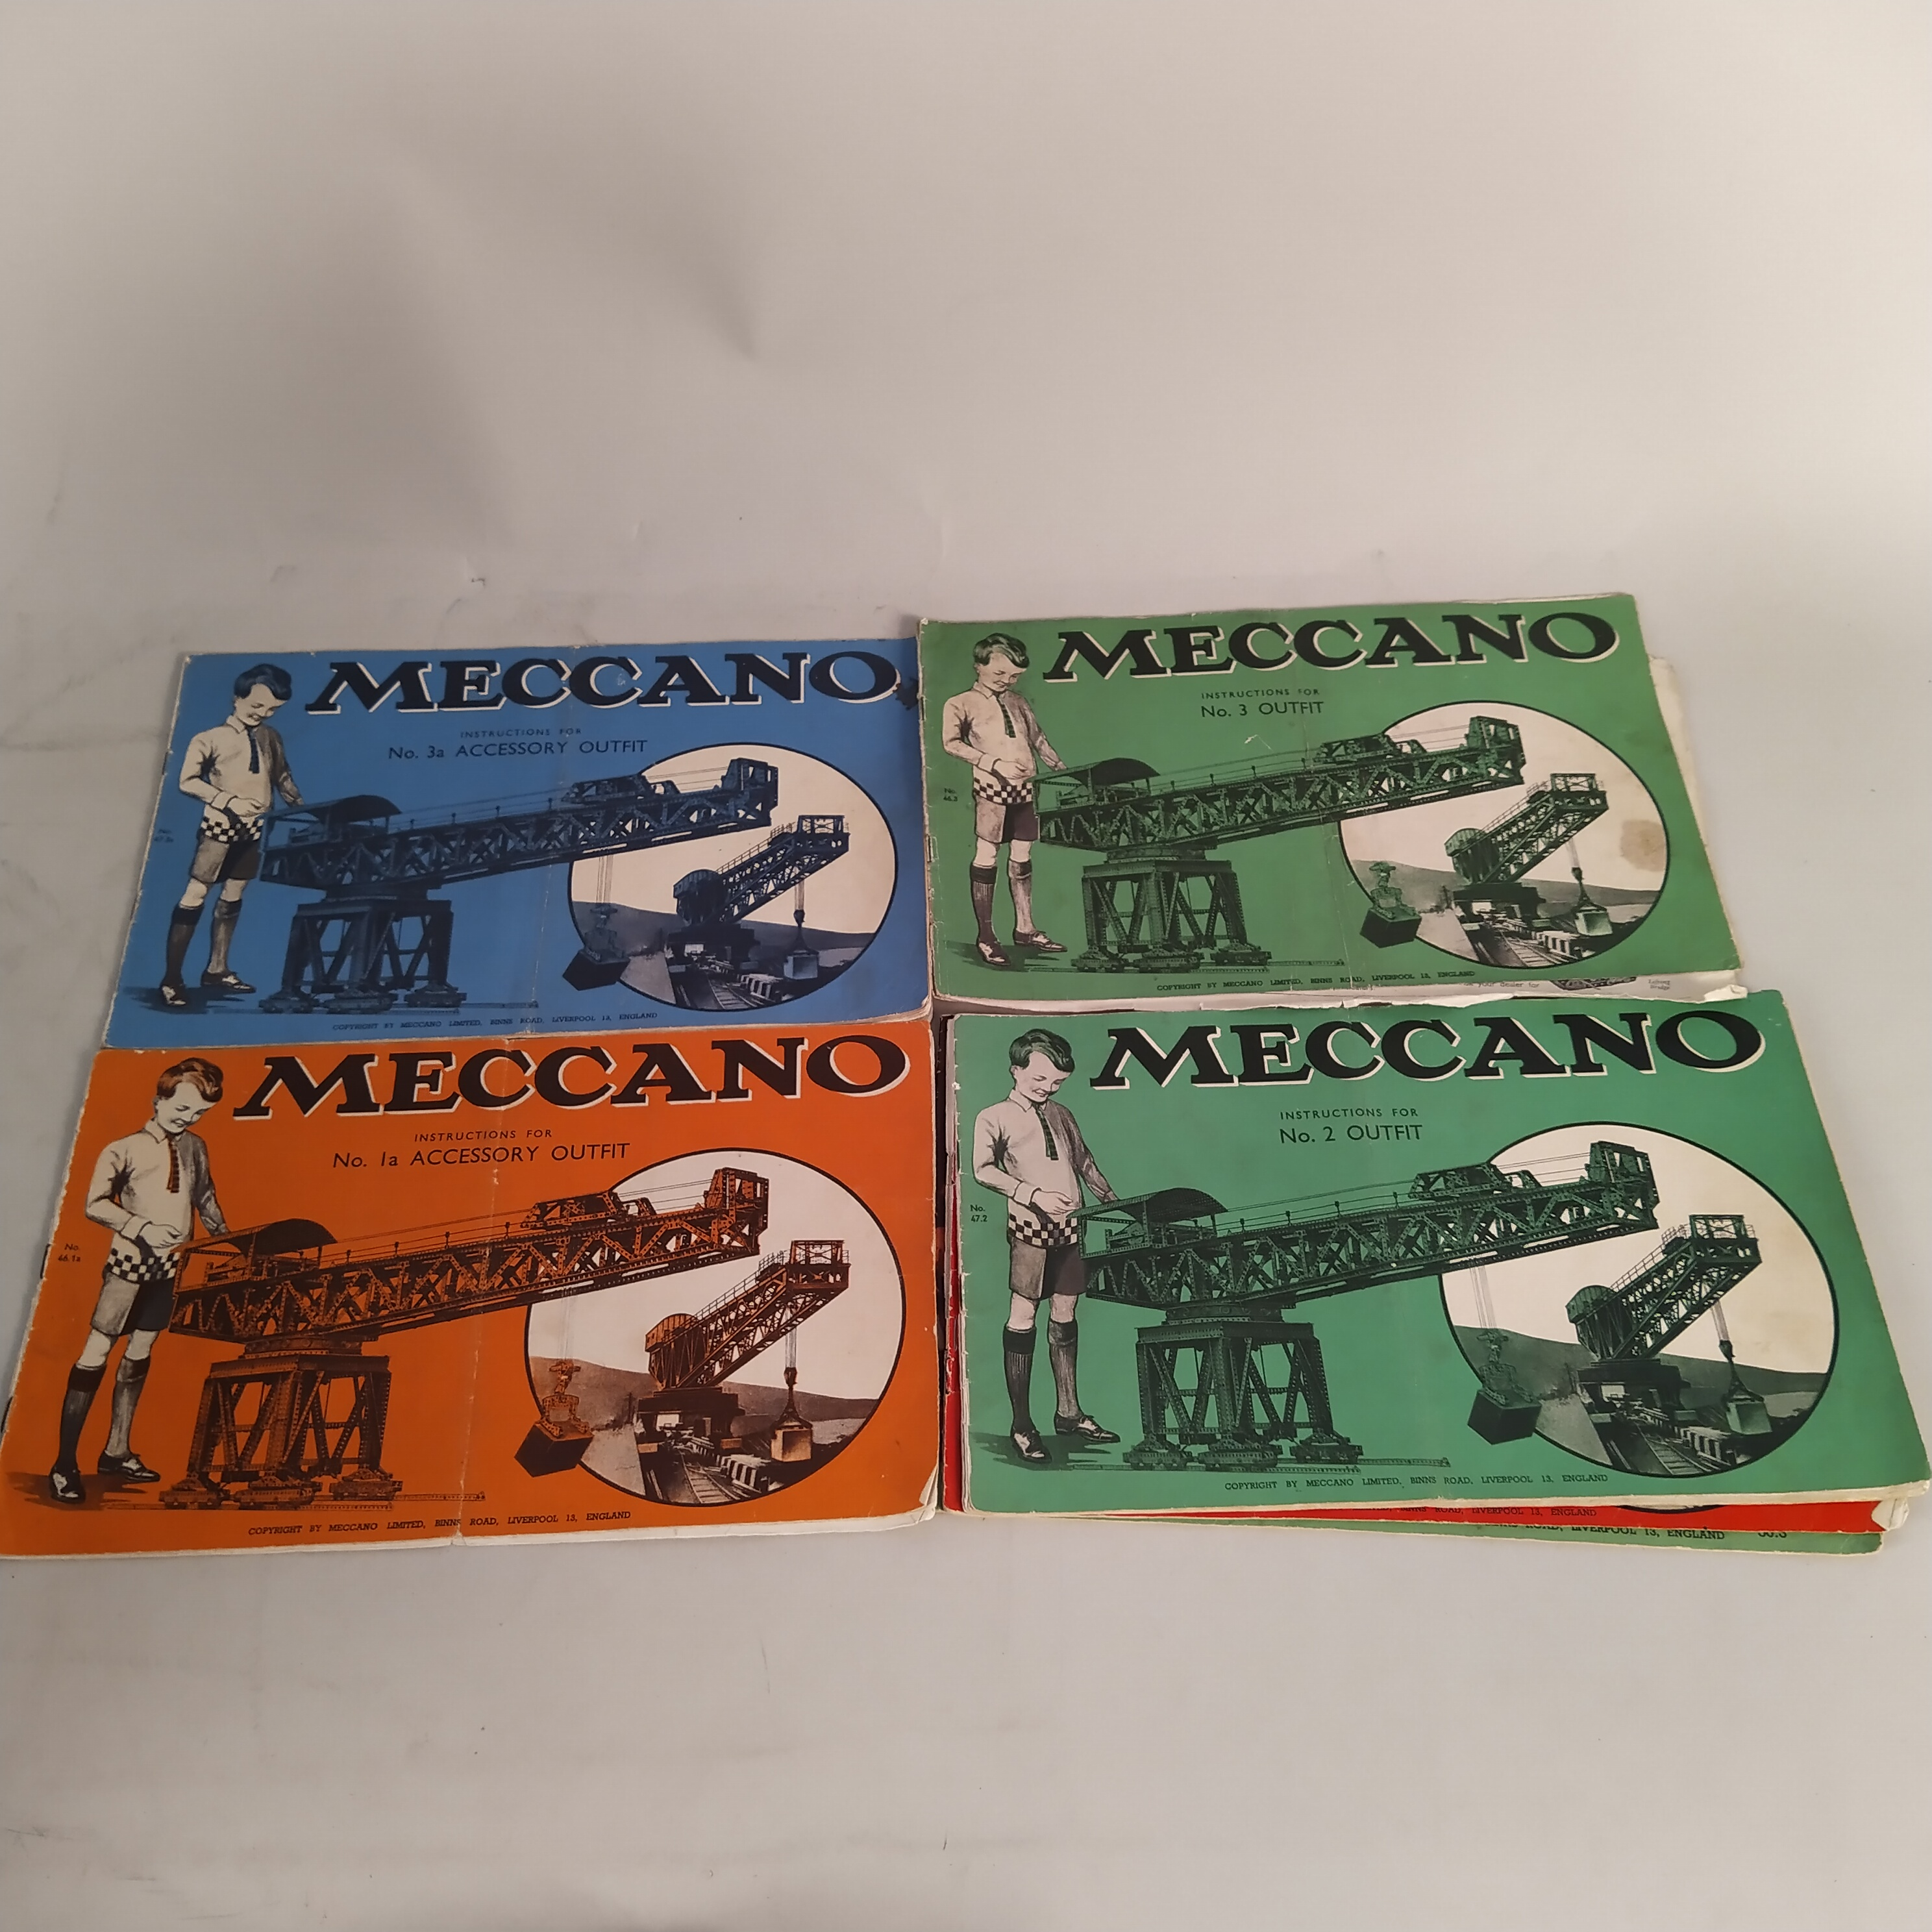 A large collection of cased and boxed Meccano accessories including booklets on construction